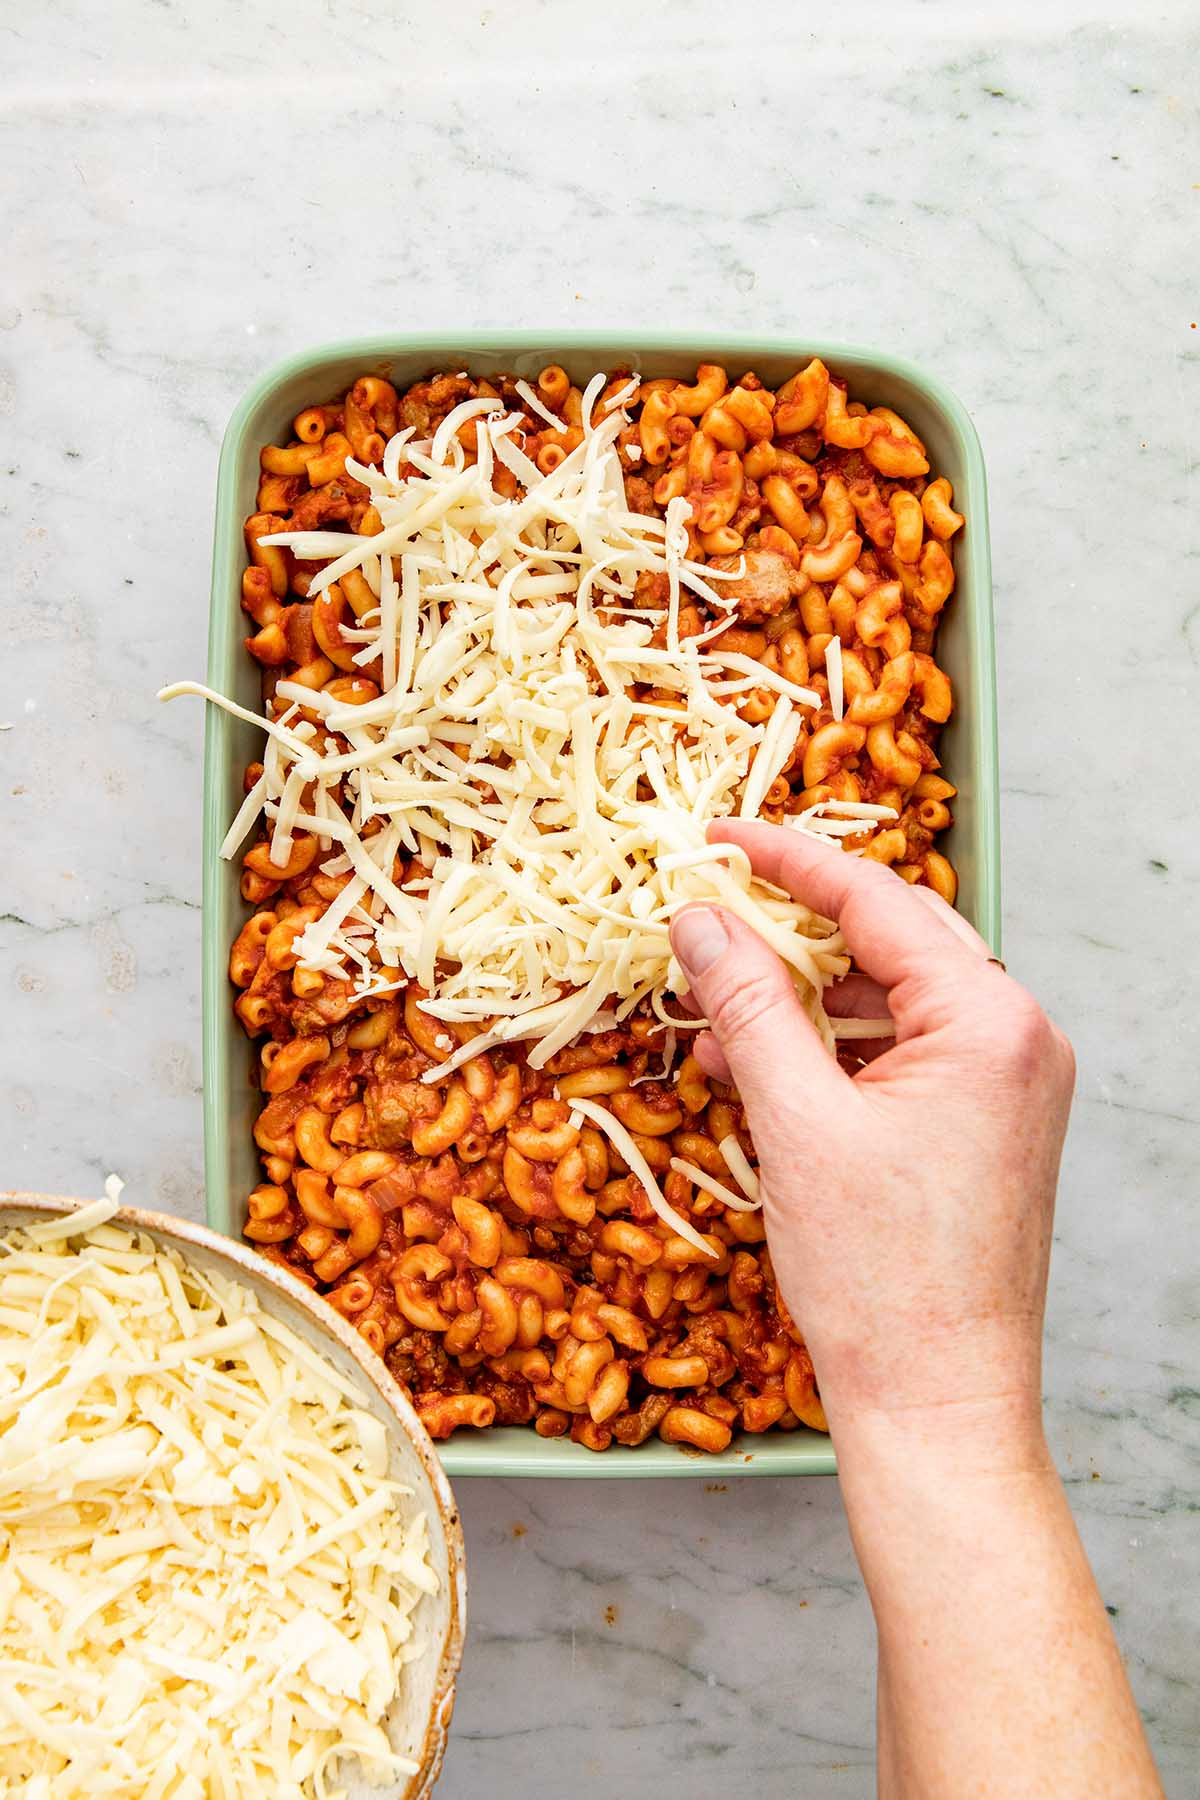 A hand sprinkling mozzarella cheese over pasta in a baking dish.